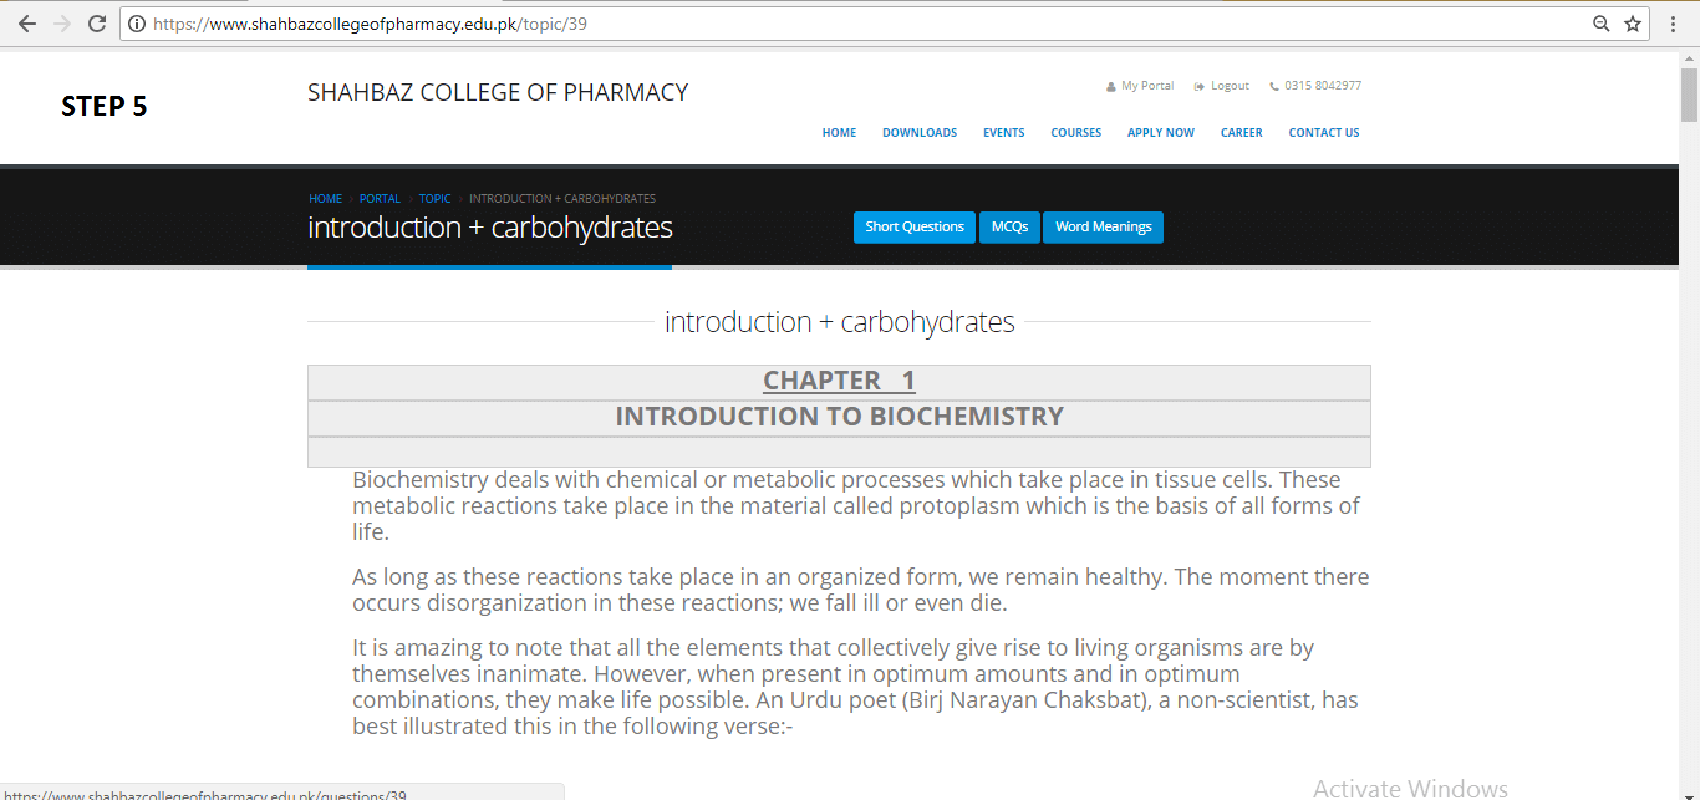 SHAHBAZ COLLEGE OF PHARMACY ONLINE PHARMACY TECHNICIAN STUDY STEP 5